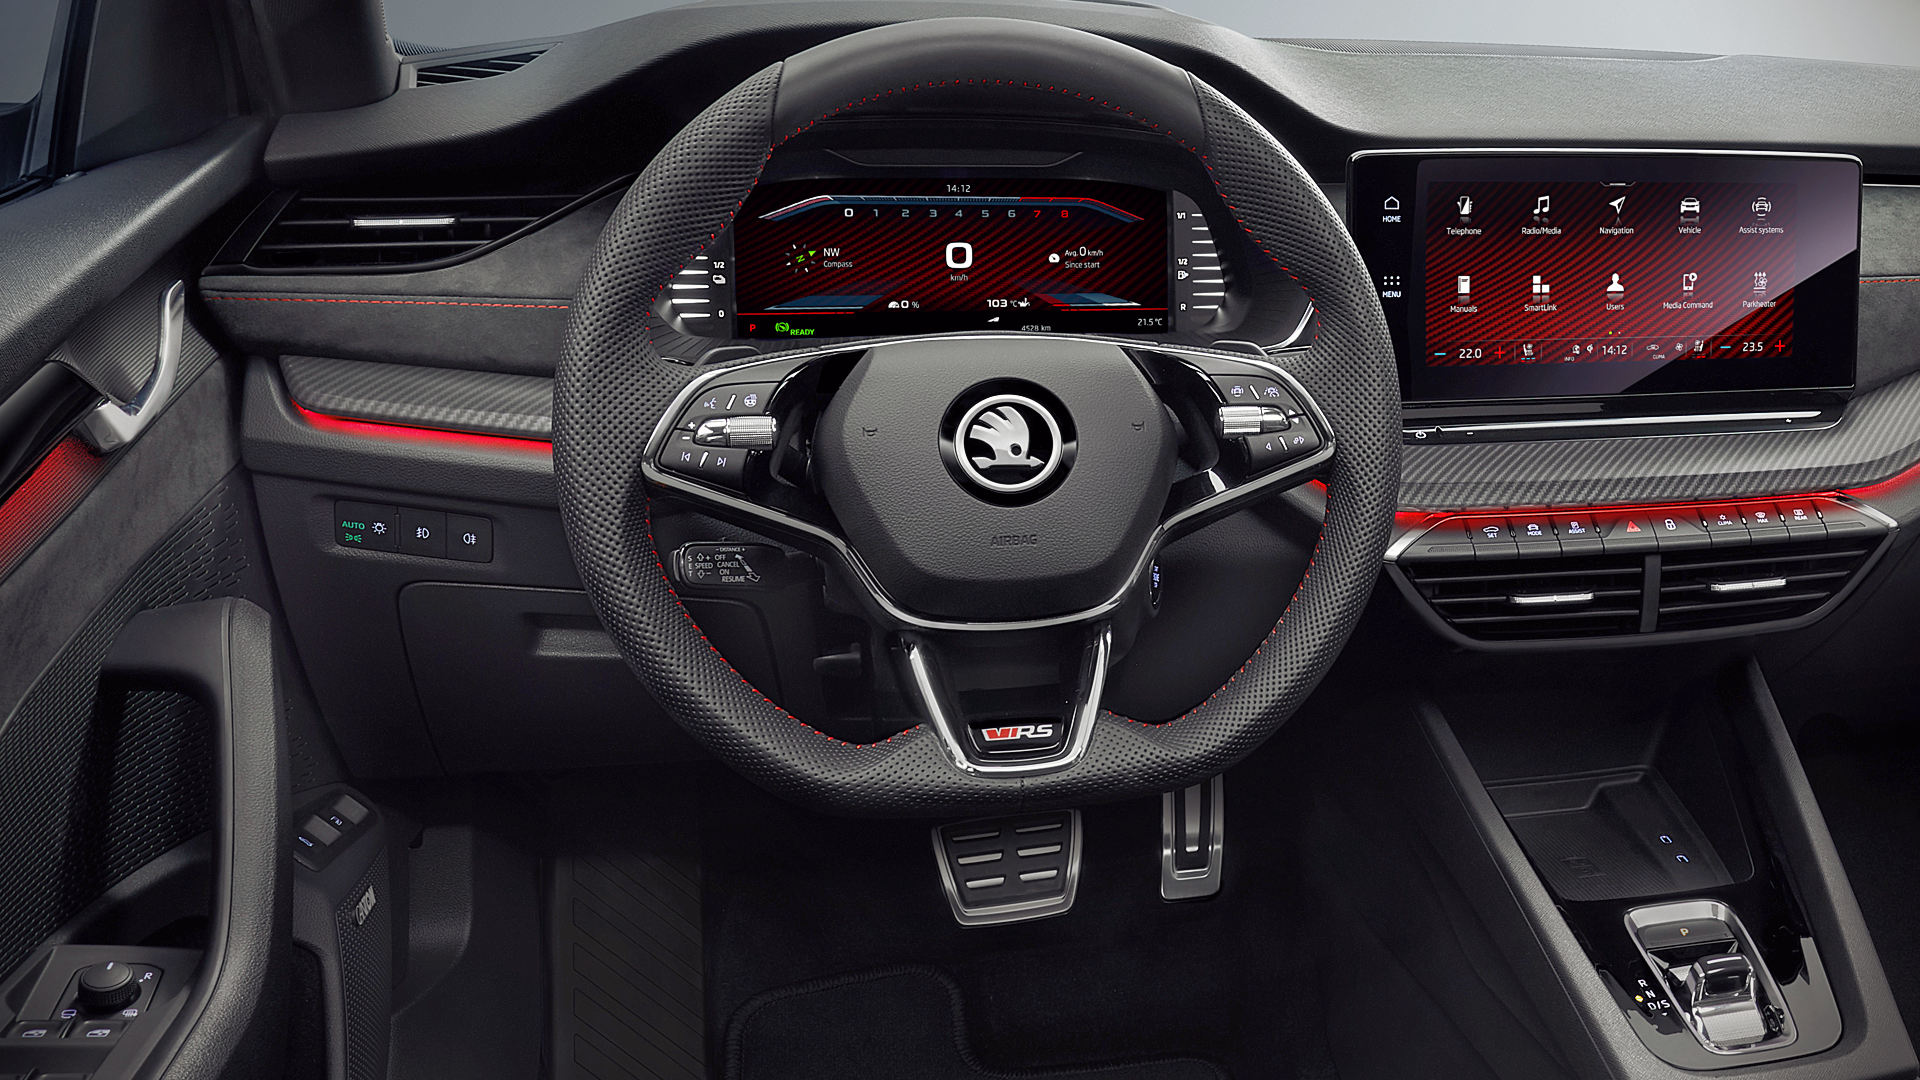 Skoda Octavia Rs Iv 2020 Interior Wallpaper